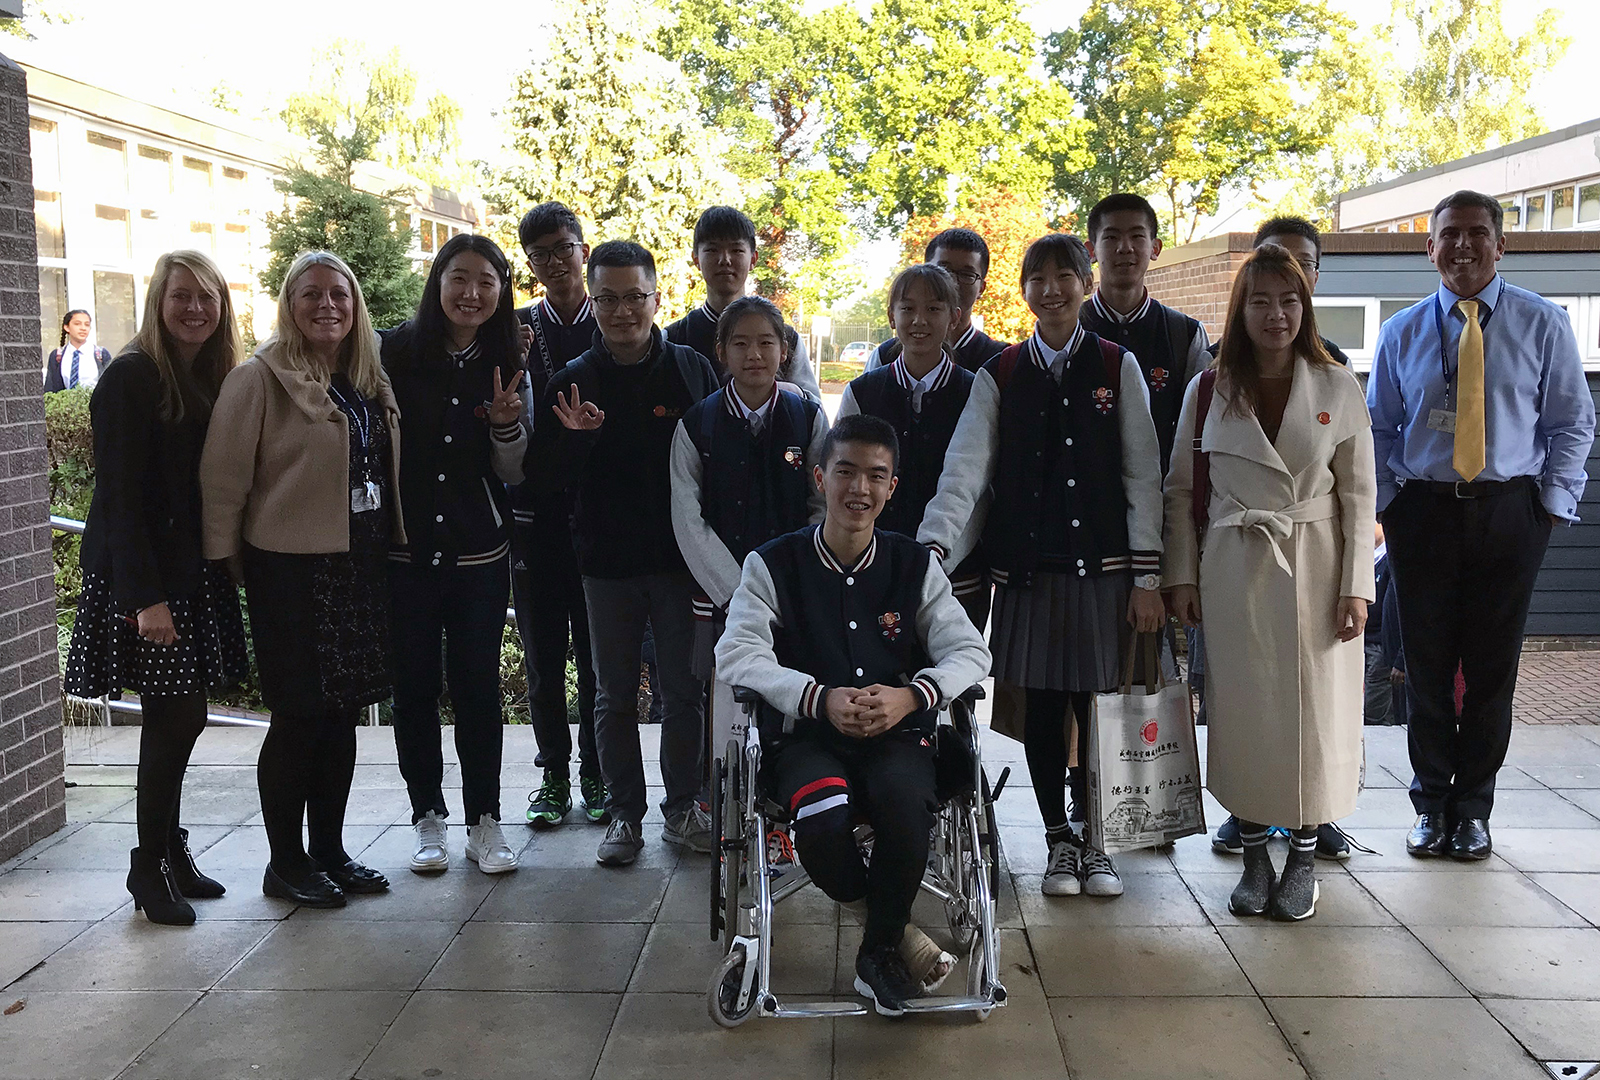 Chinese visit to Kettlethorpe 2019